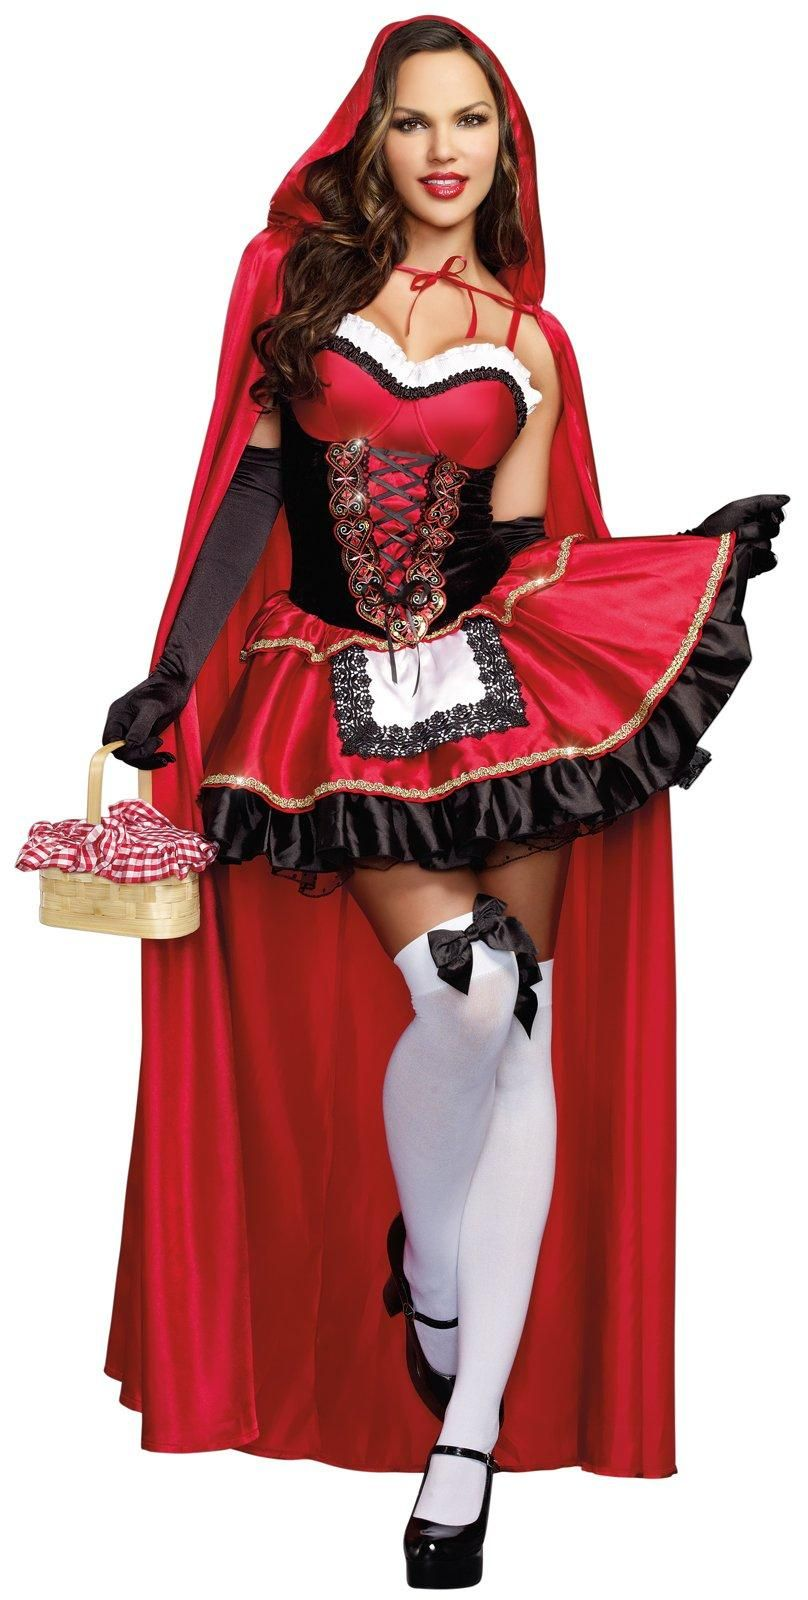 c431e265d07 I was trying to talk my wife into taking me out Halloween night as little red  riding hood. But she wouldn t go for it